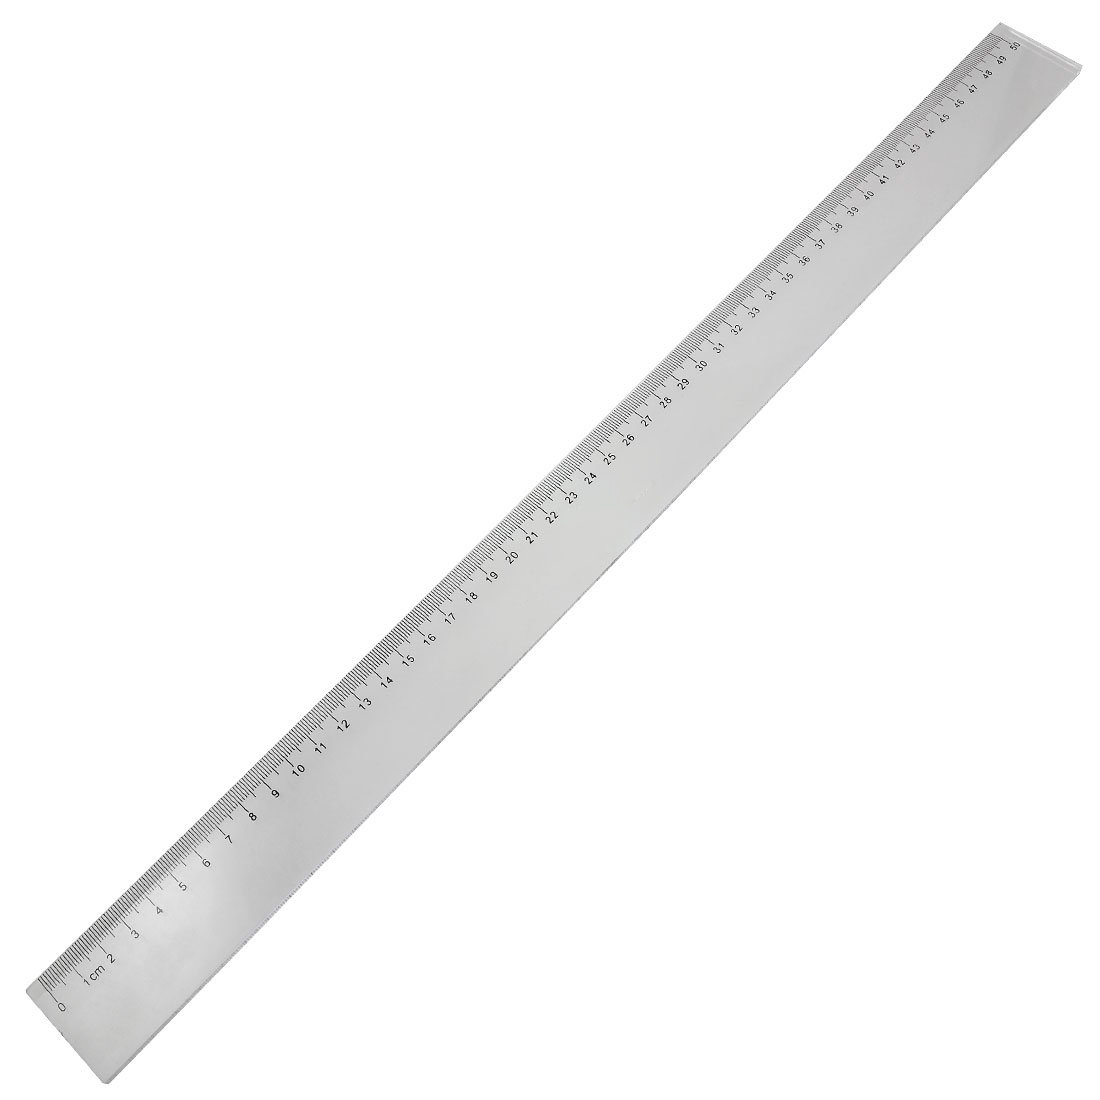 BLEL Hot 50cm Clear Plastic Measuring Long Straight Centimeter Ruler